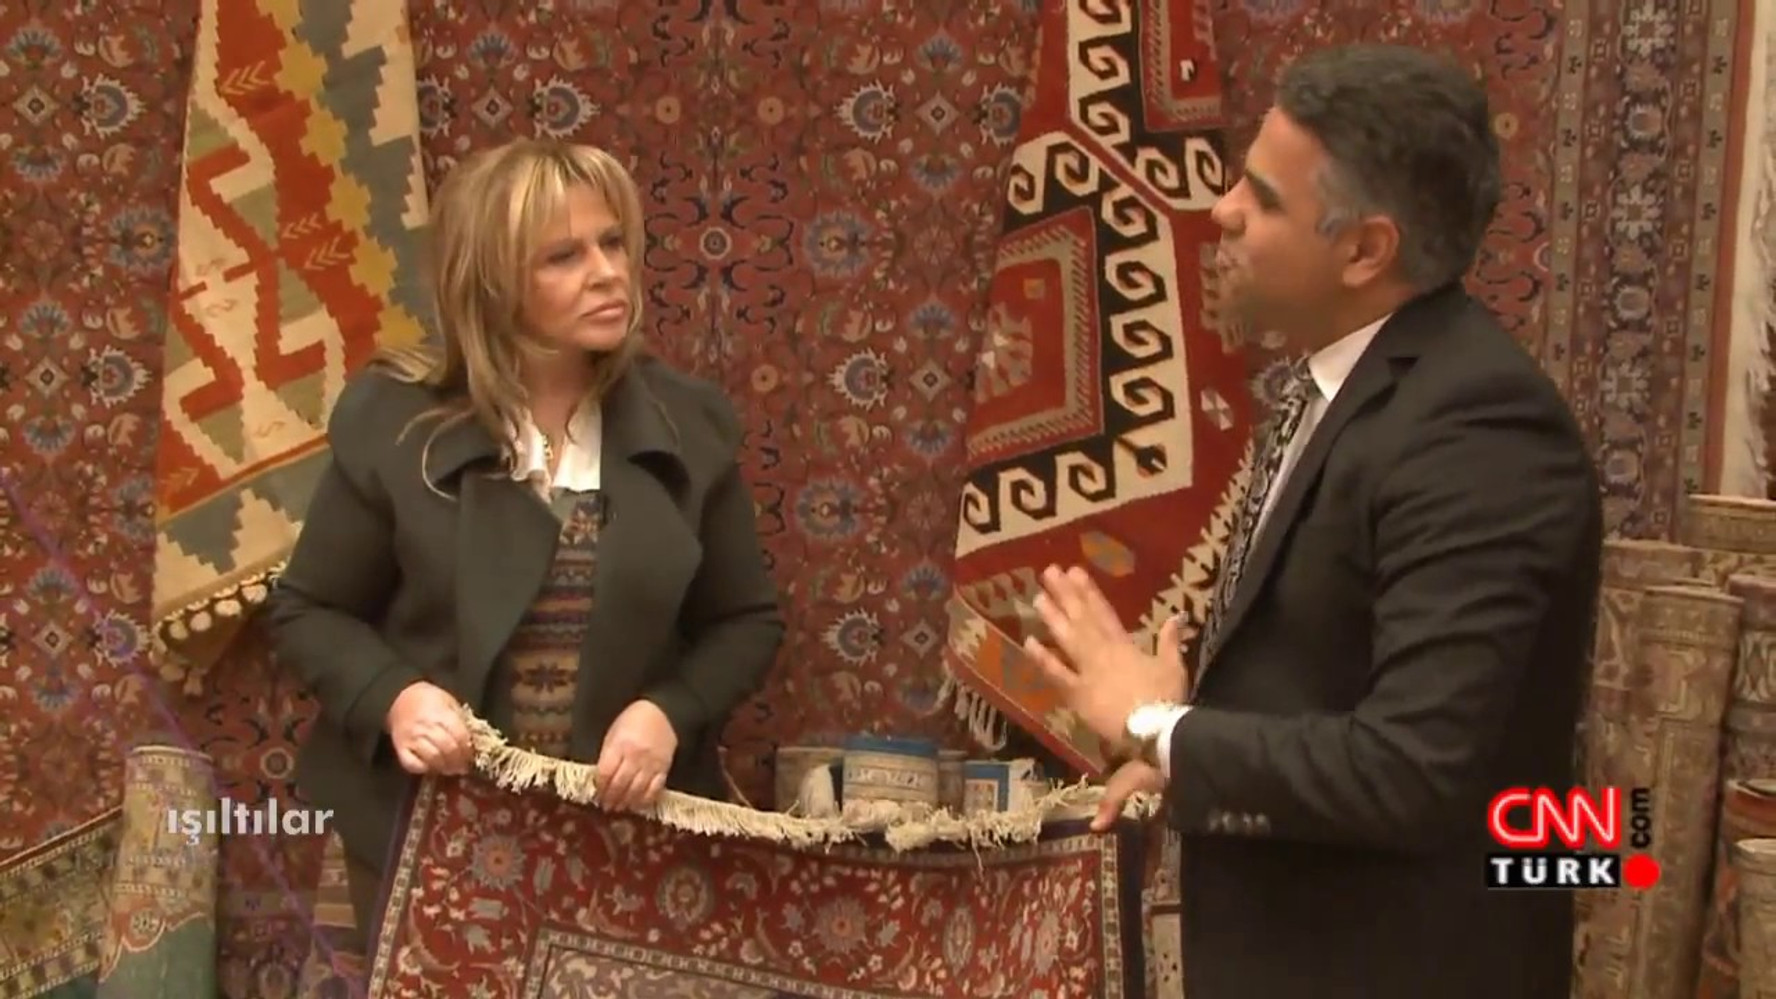 CNN Turk hosts Hakan Evin ,talks about how he started and became famous rug dealer in Grand Bazaar